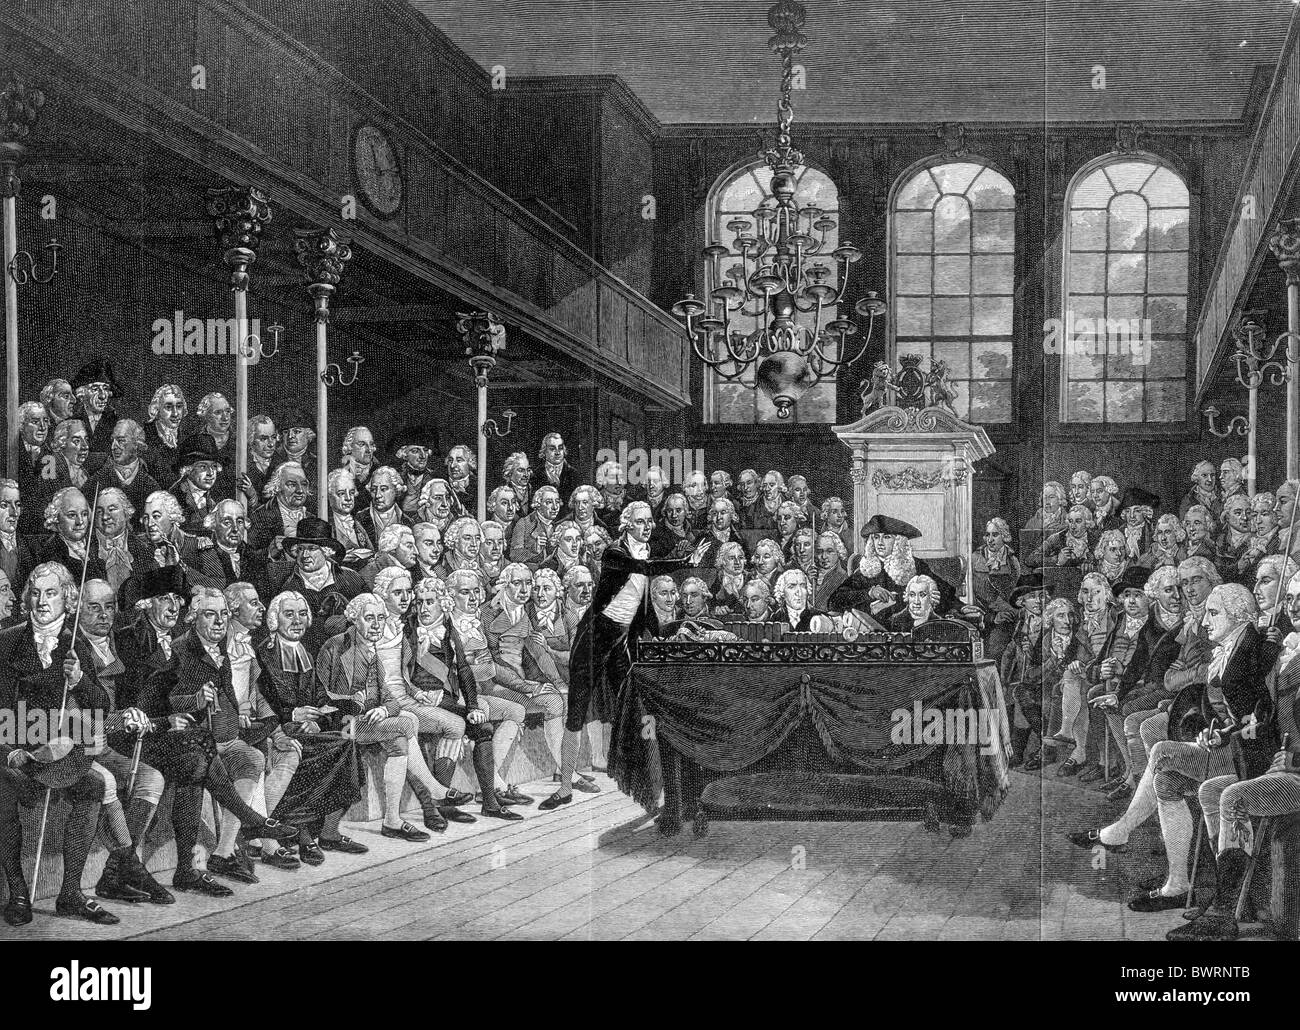 The House of Commons in 1793; Black and White Illustration; - Stock Image